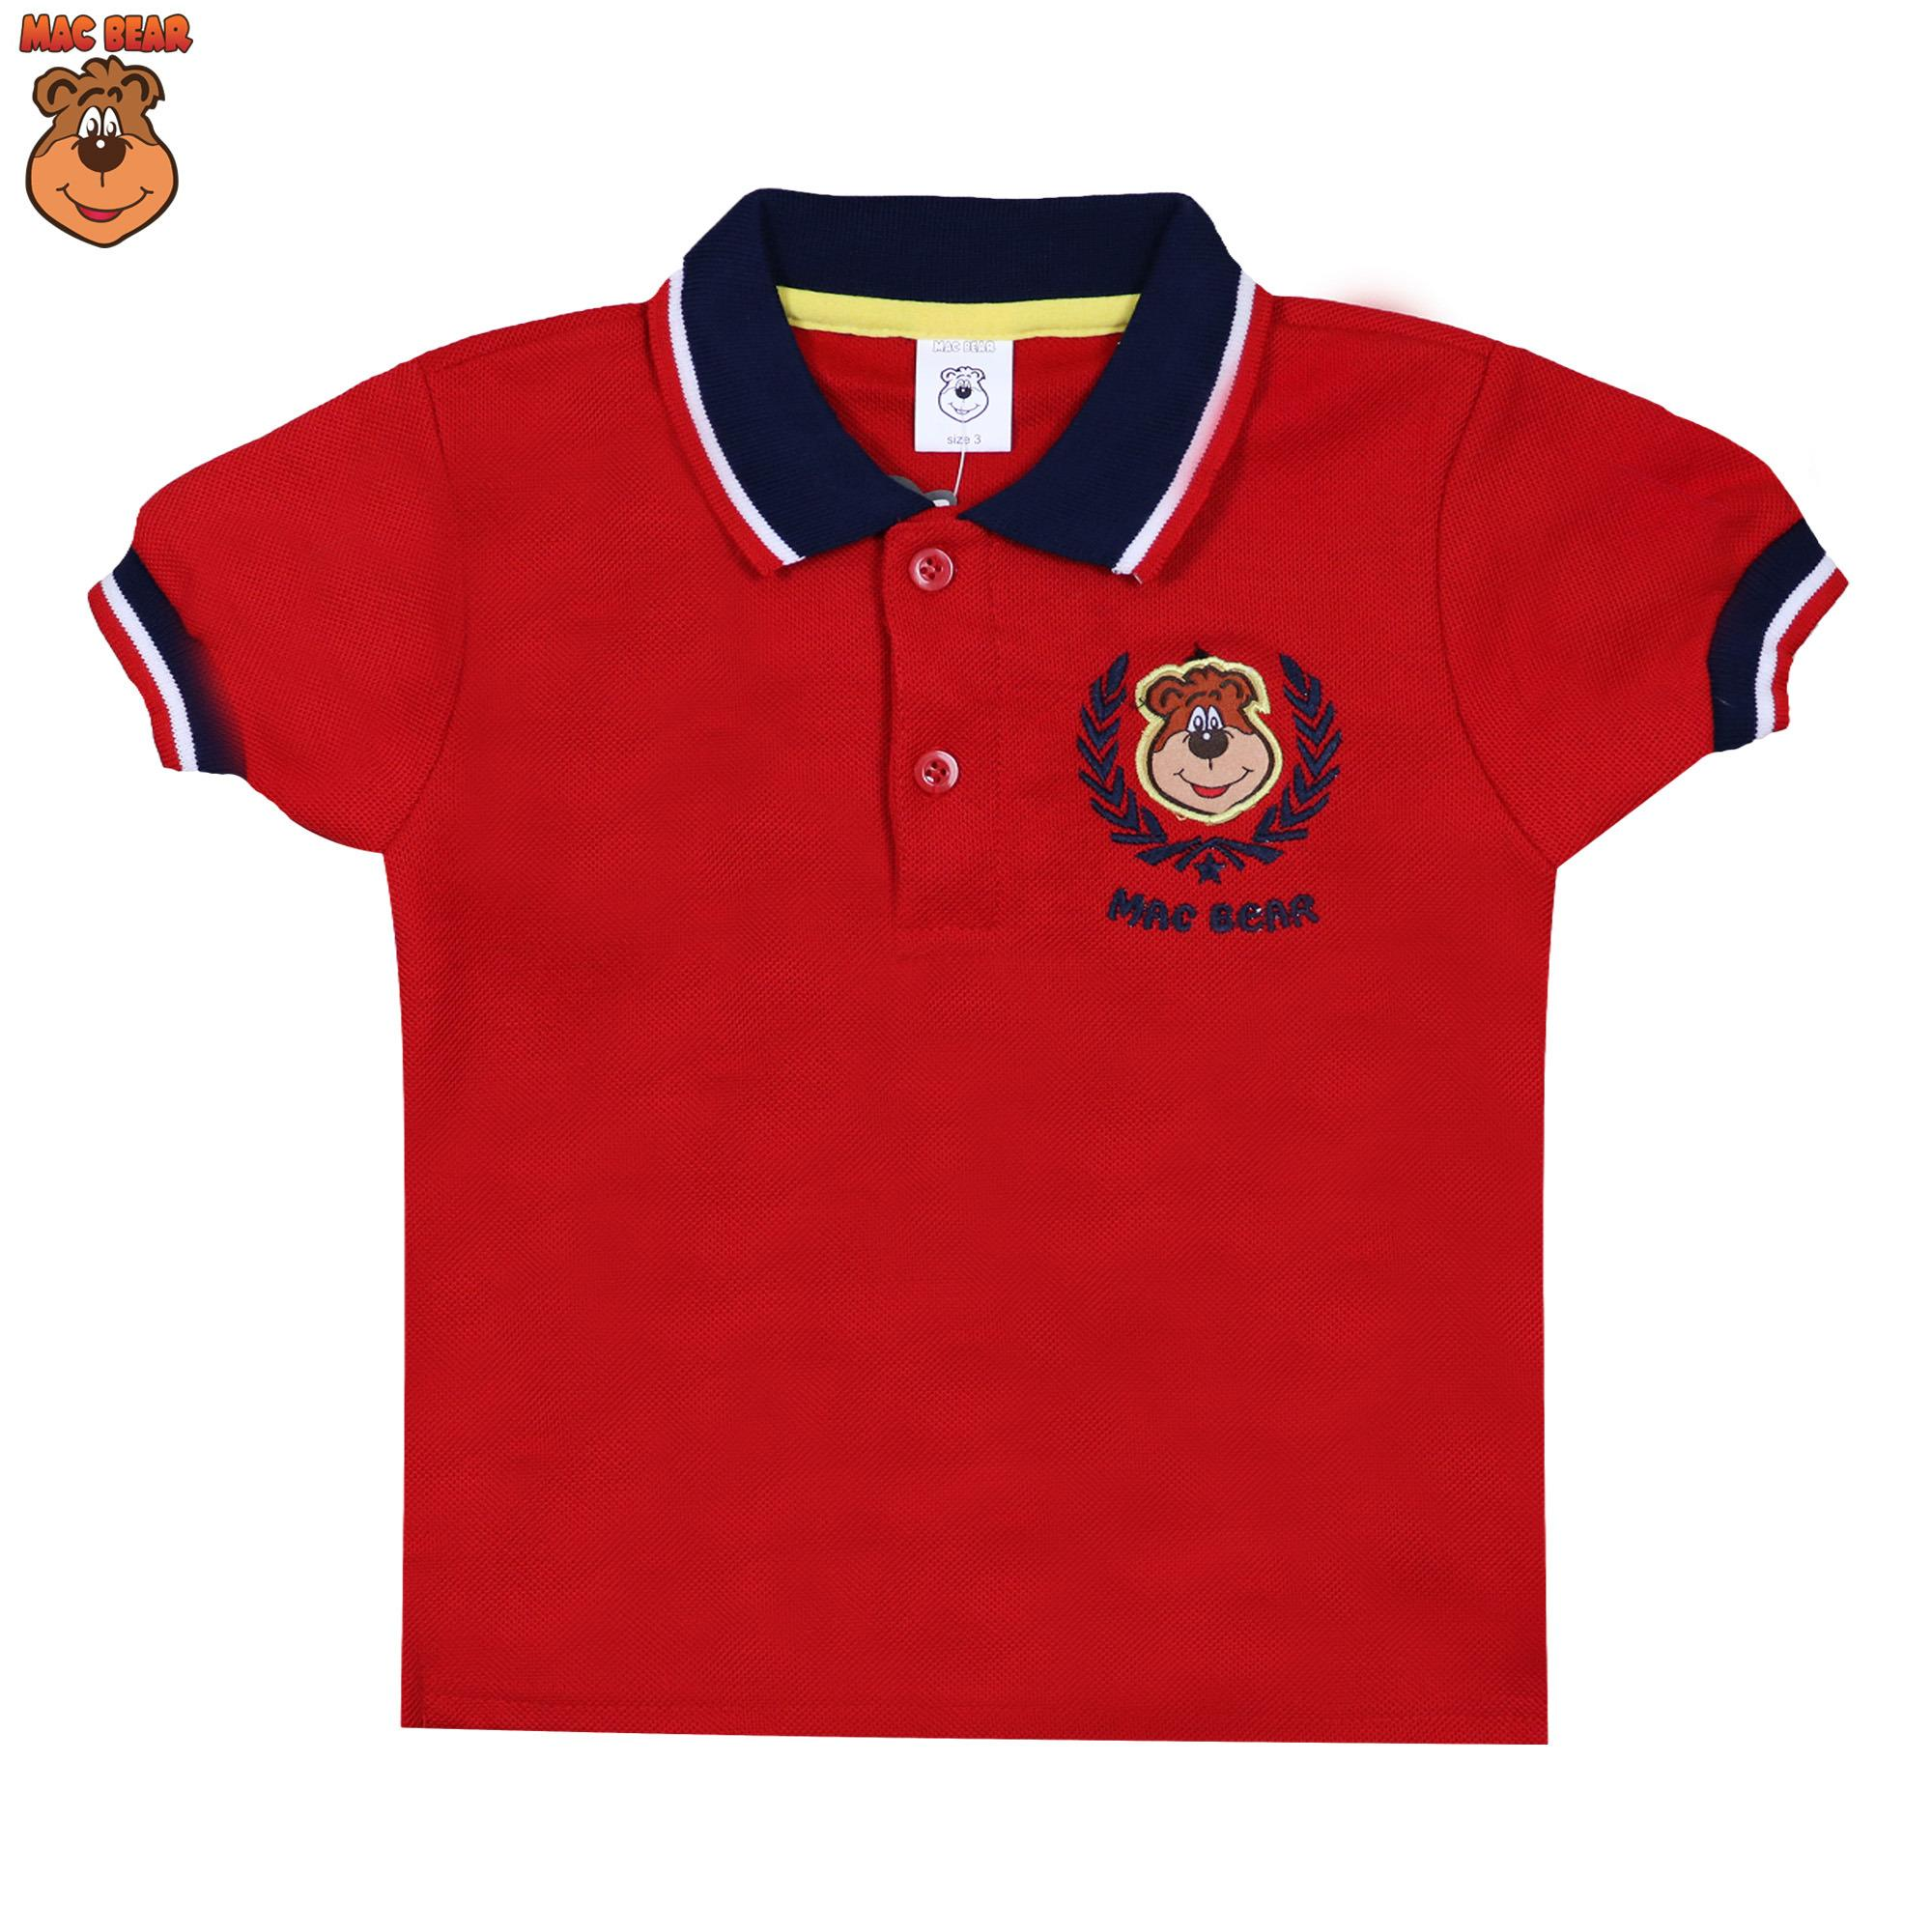 Daftar Harga Cx6 1802 Macbear Kids Baju Anak Setelan Singlet Usa T Shirt Size 5 Merah Pocket Crabby Set Red 2 Exclusive